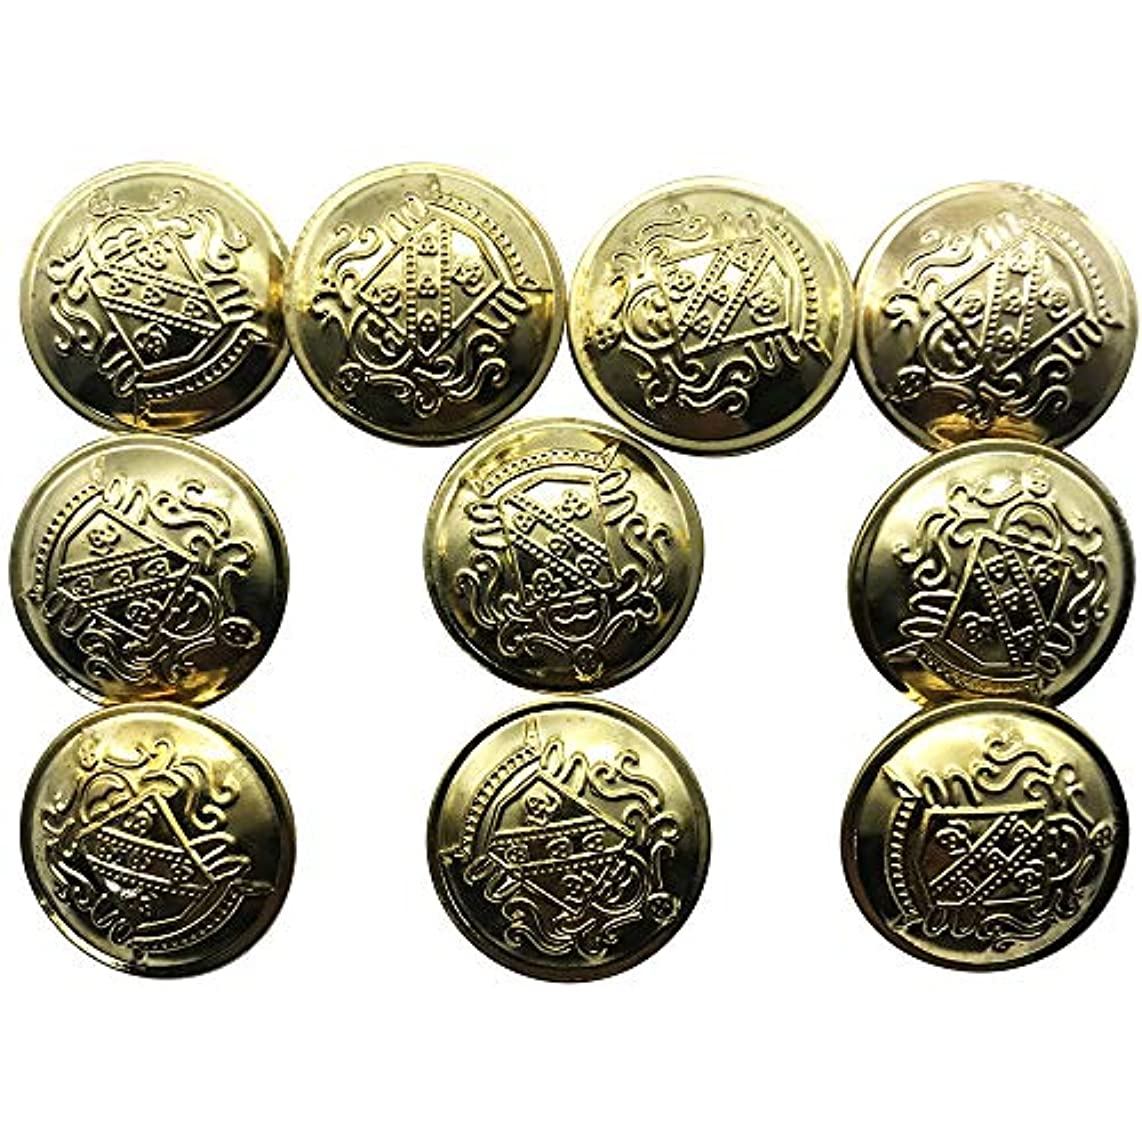 ZQMALL 10pcs Antique Gold Metal Blazer Buttons Set with Shank Measuring 1 inch for Blazers,Suits,Jackets, Q2048